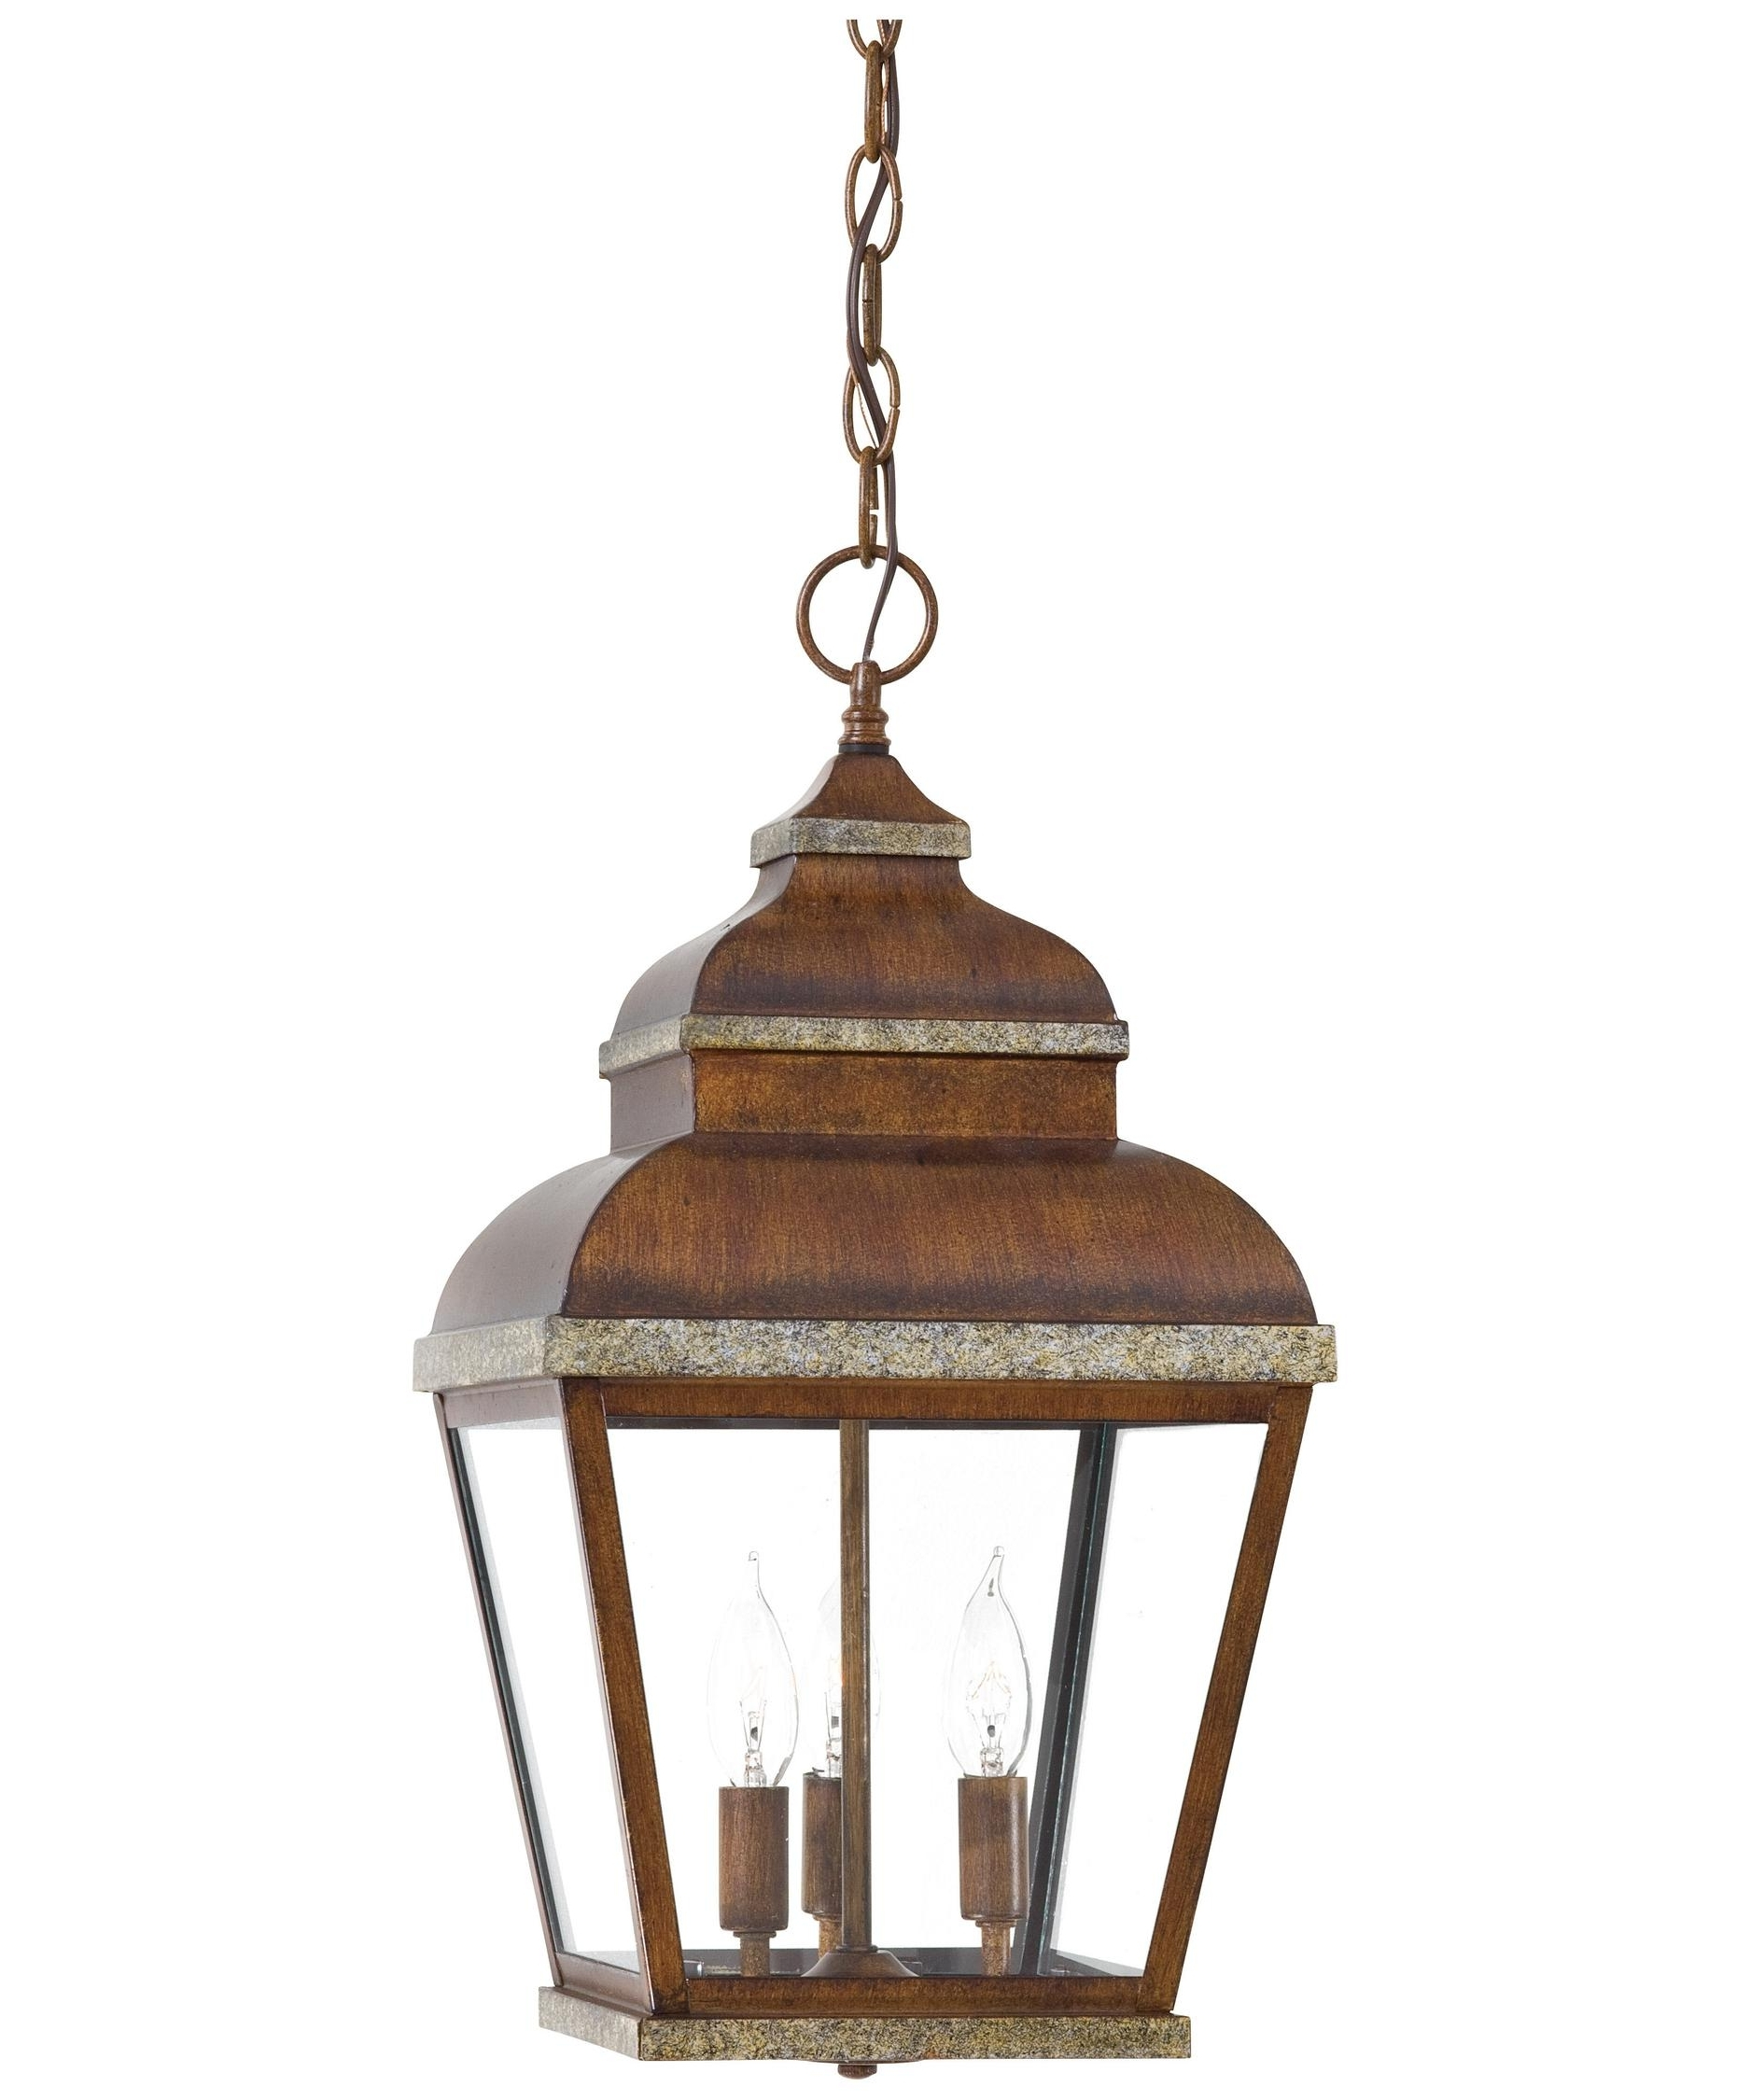 Outdoor Hanging Lanterns At Amazon In Favorite Minka Lavery 8264 Mossoro 10 Inch Wide 3 Light Outdoor Hanging (View 10 of 20)